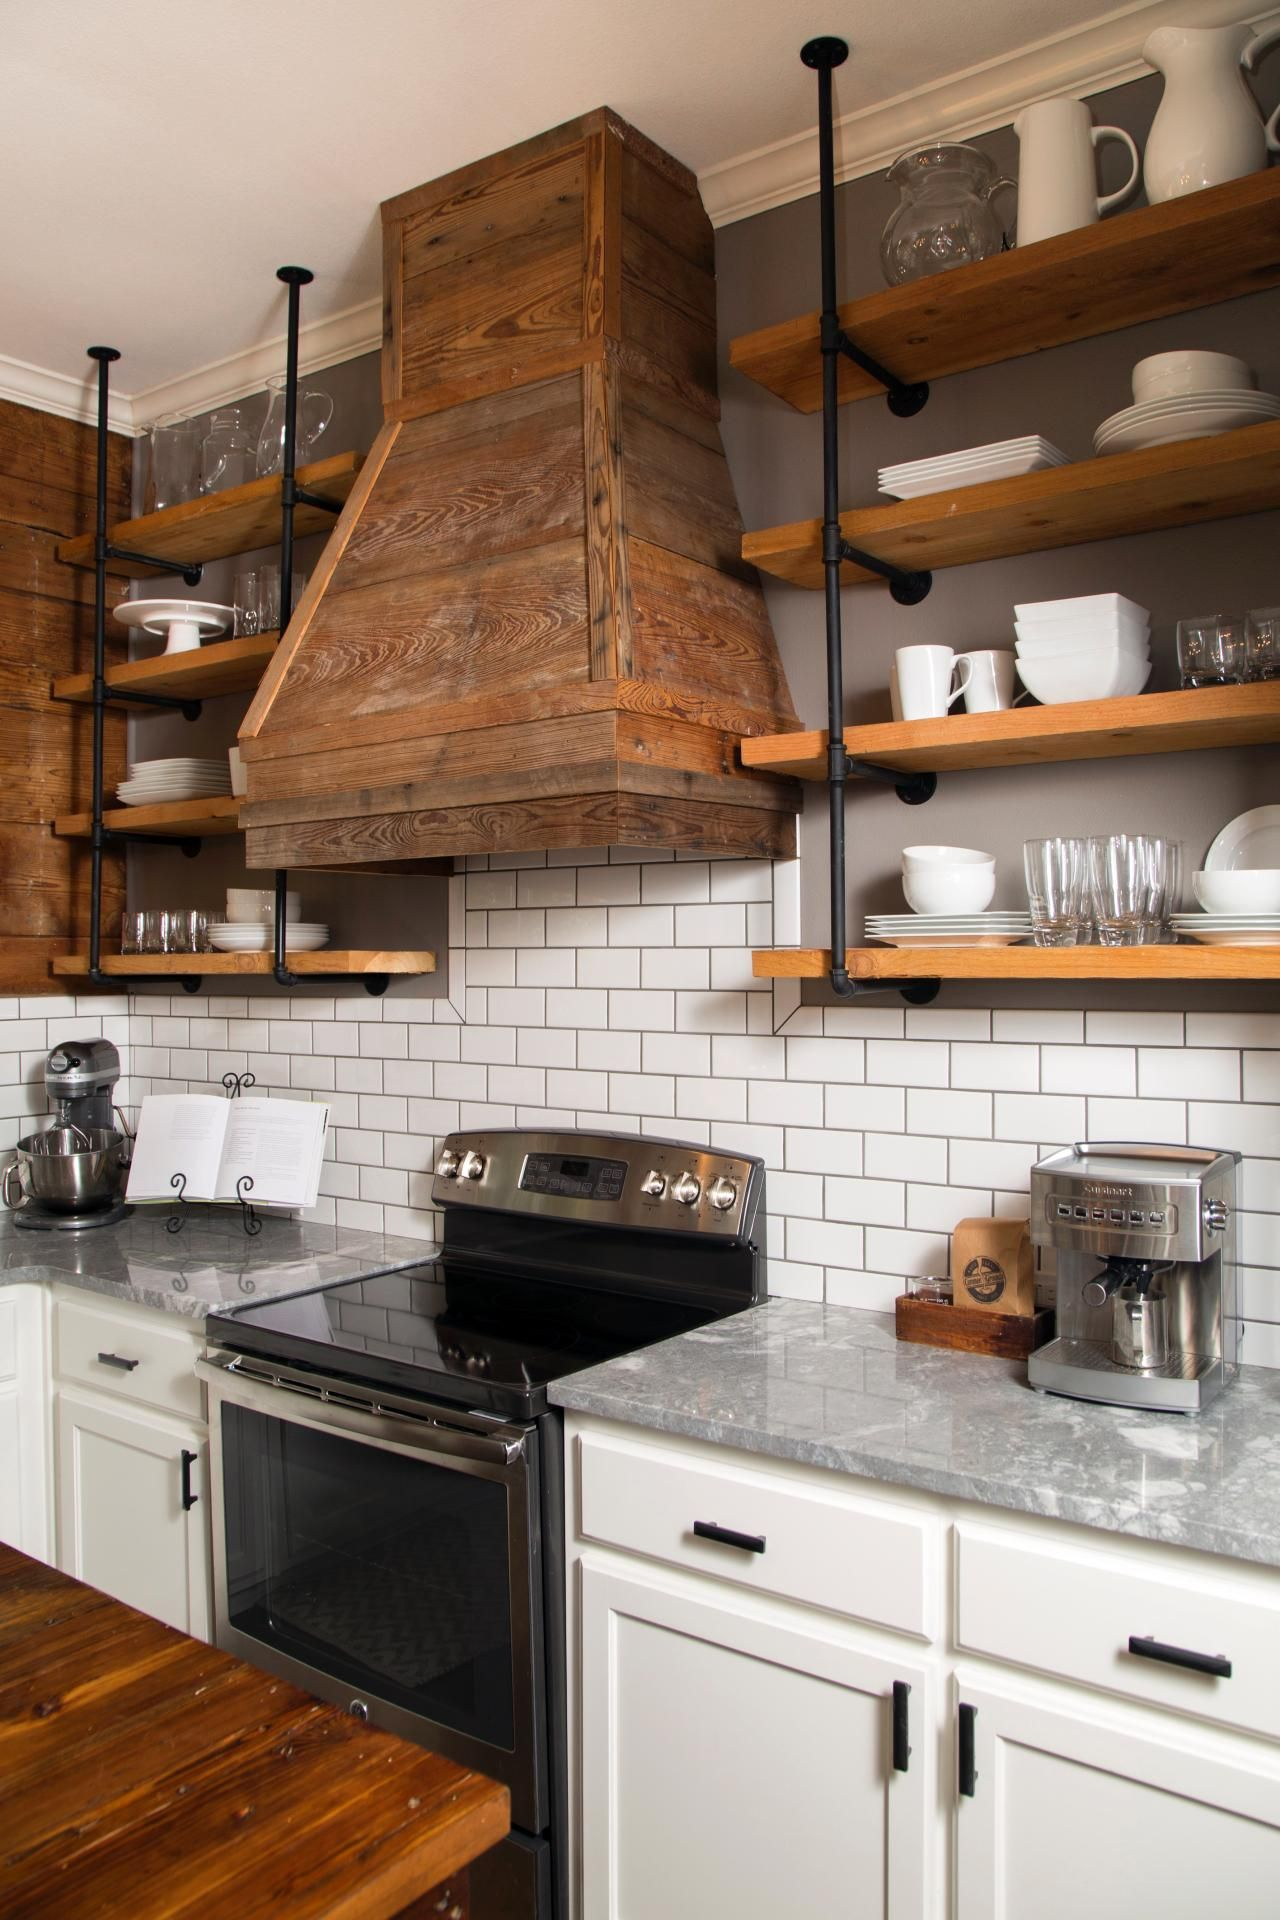 Rustic Kitchen Shelving